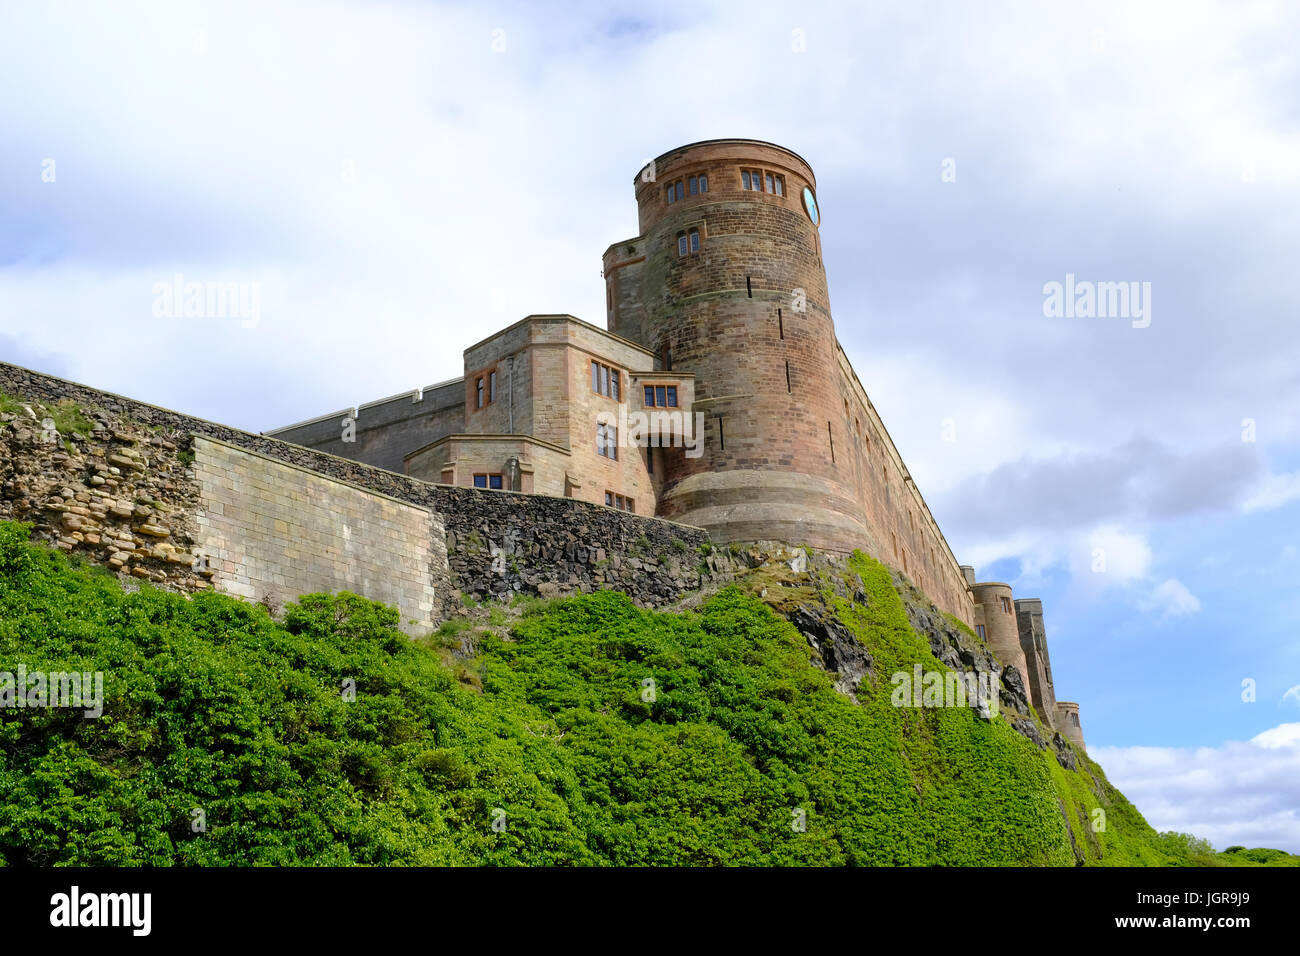 Bamburgh Castle - located on the northeast coast of England in Northumberland in the UK - Stock Image